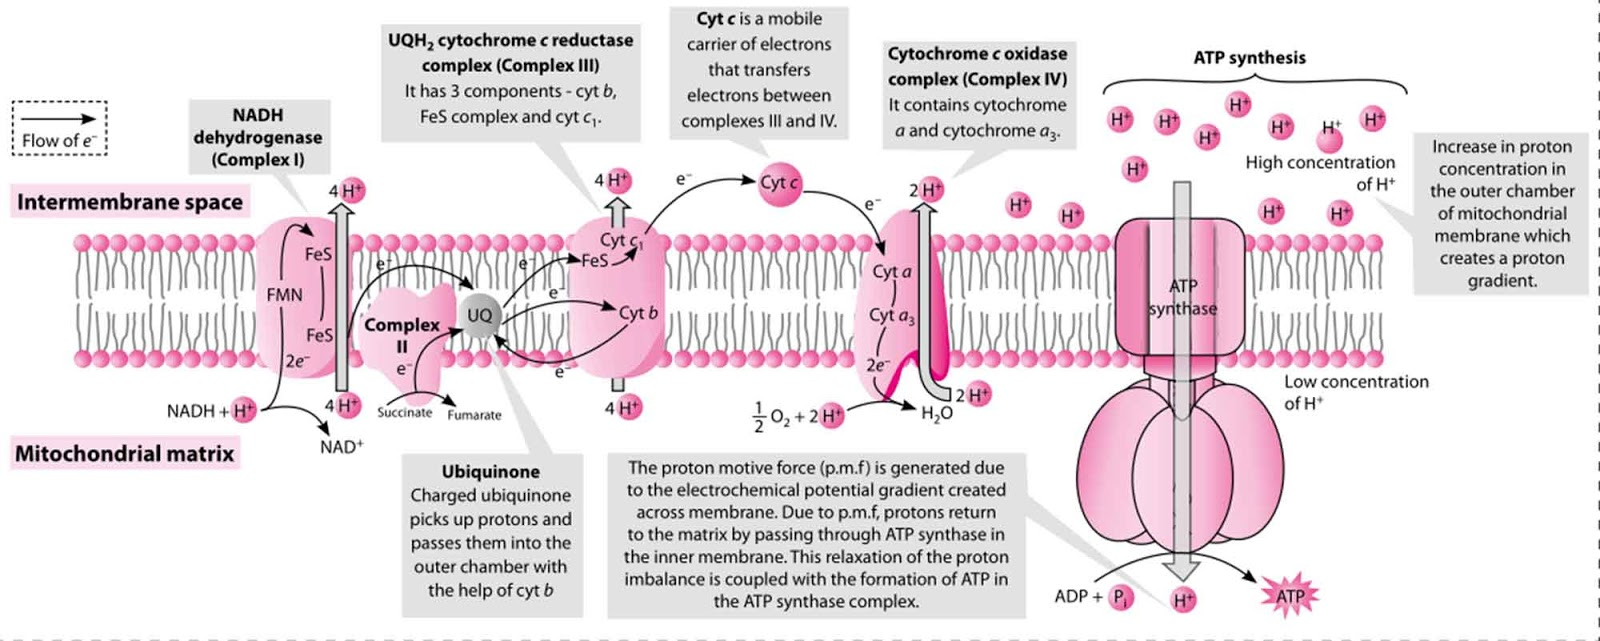 atp synthesis in mitochondria